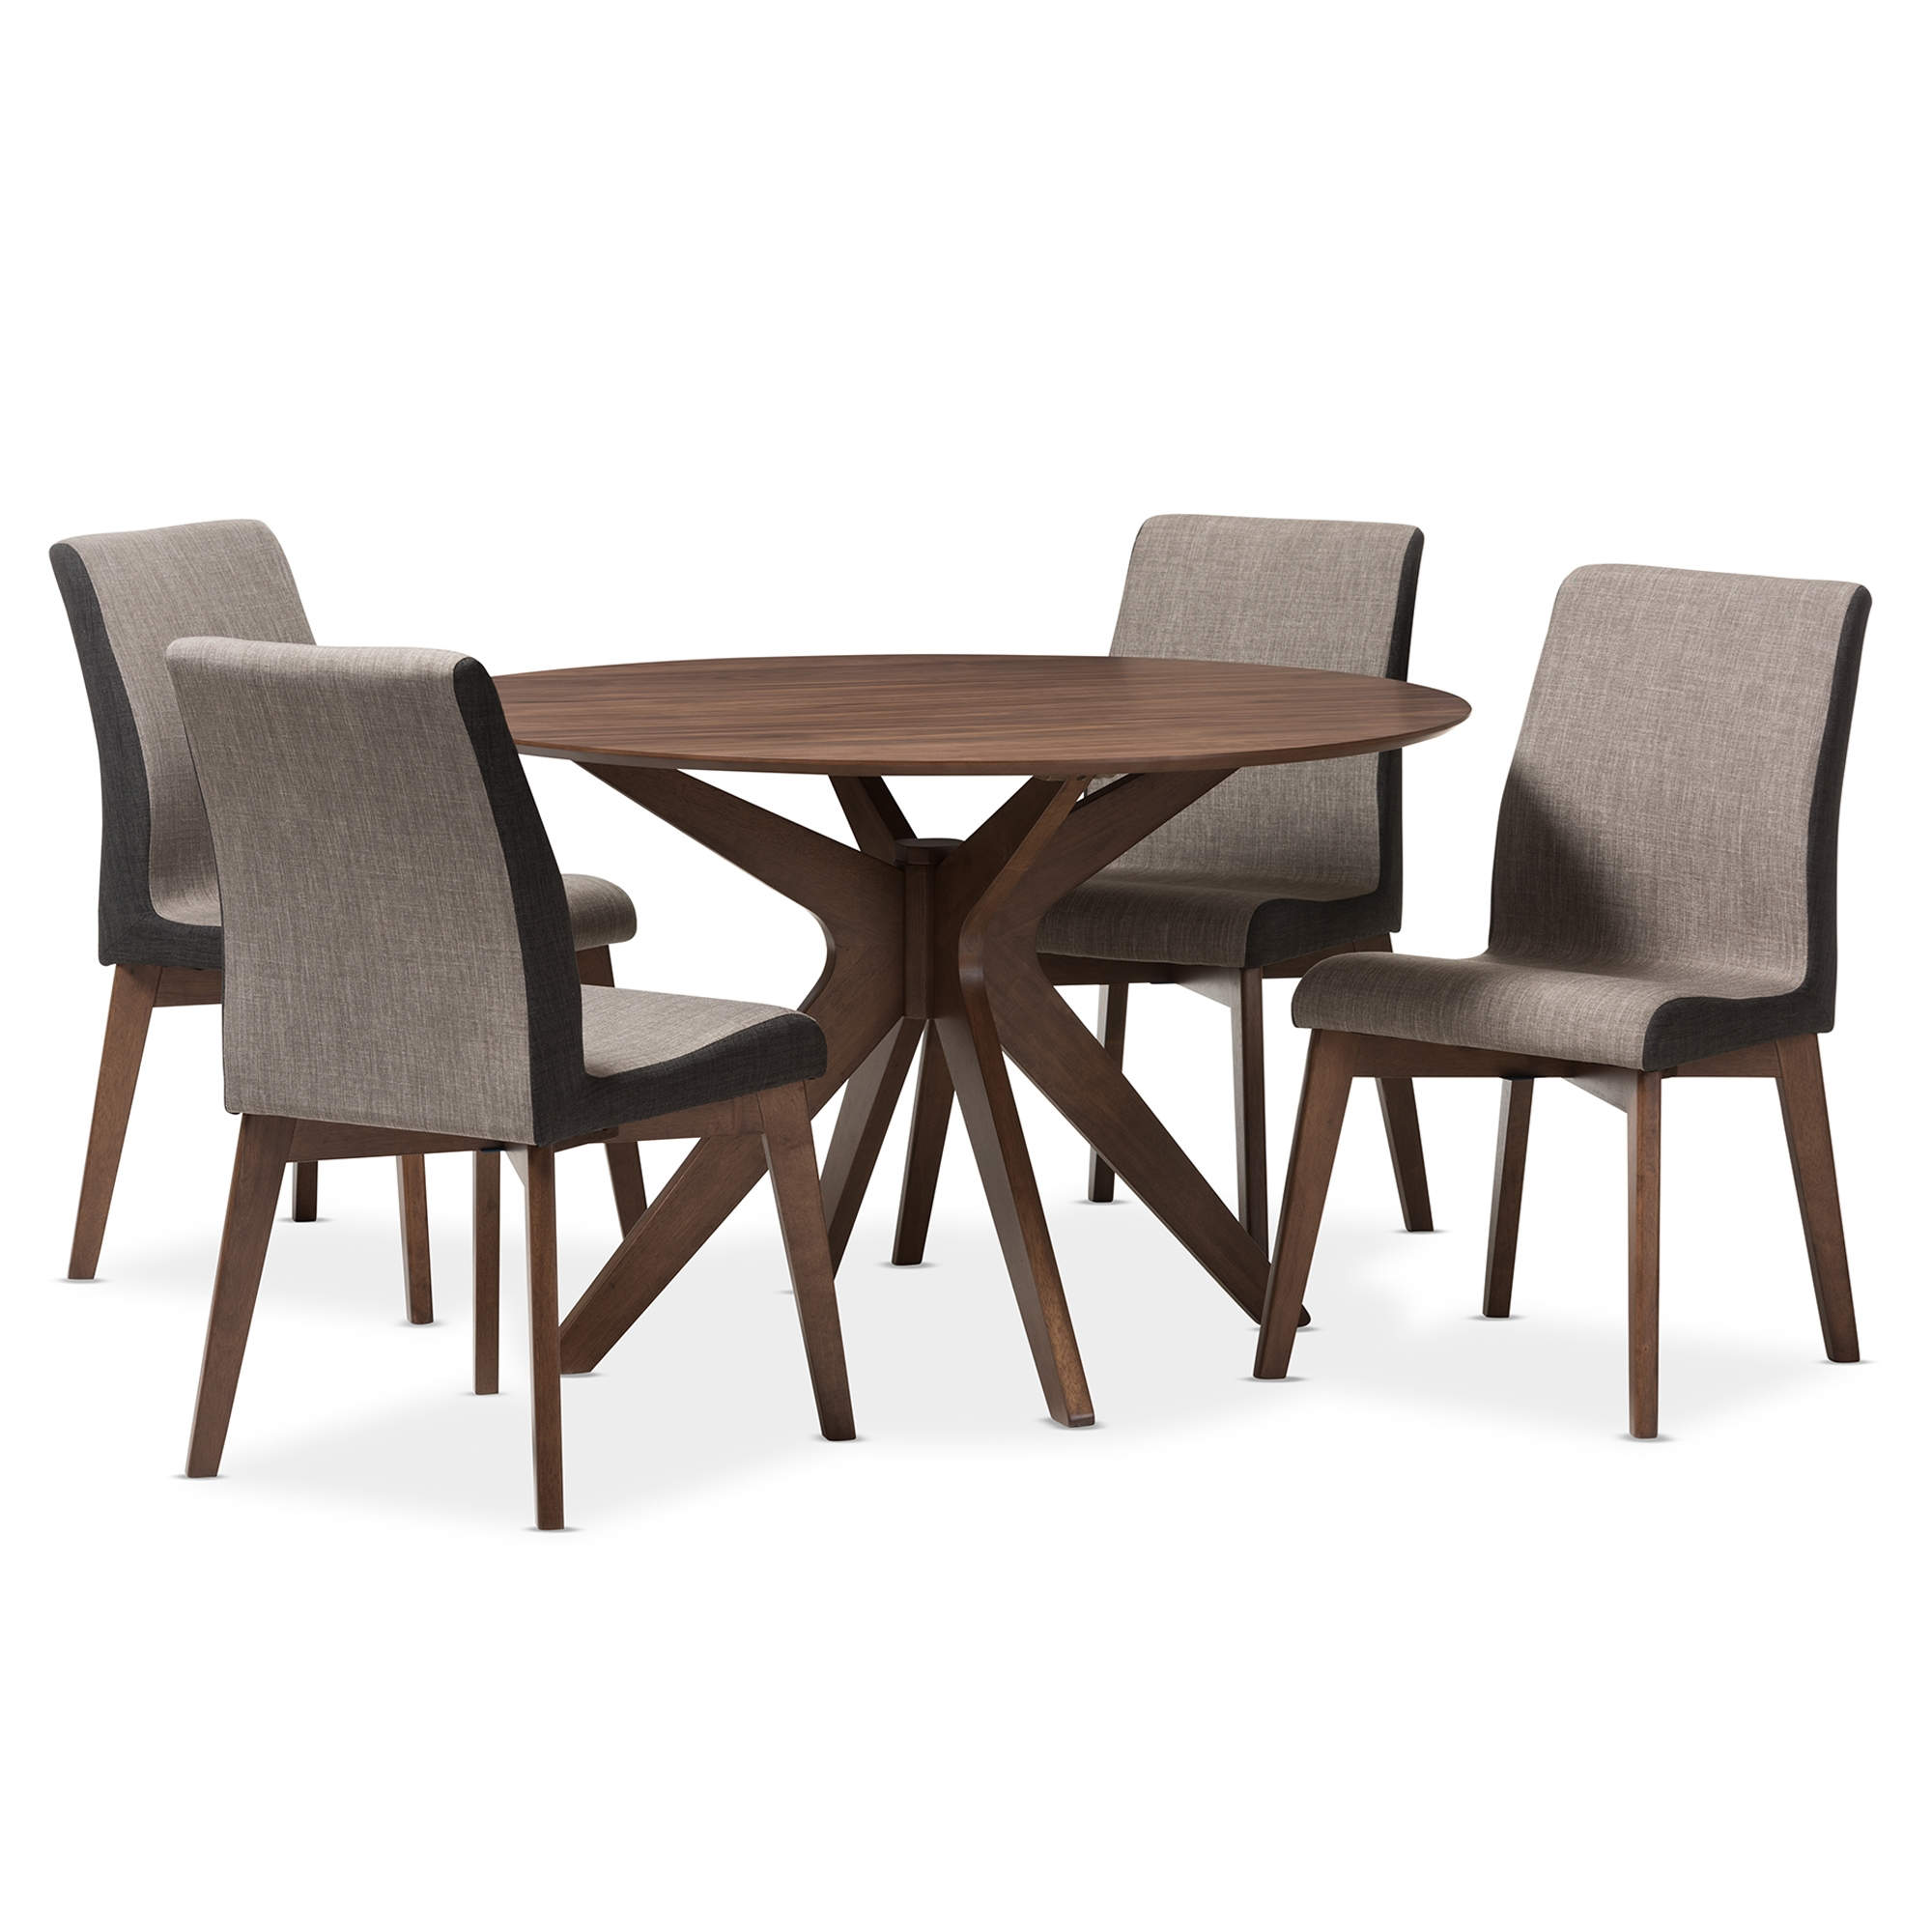 Elegant Baxton Studio Kimberly Mid Century Modern Walnut Wood Round 5 Piece Dining  Set